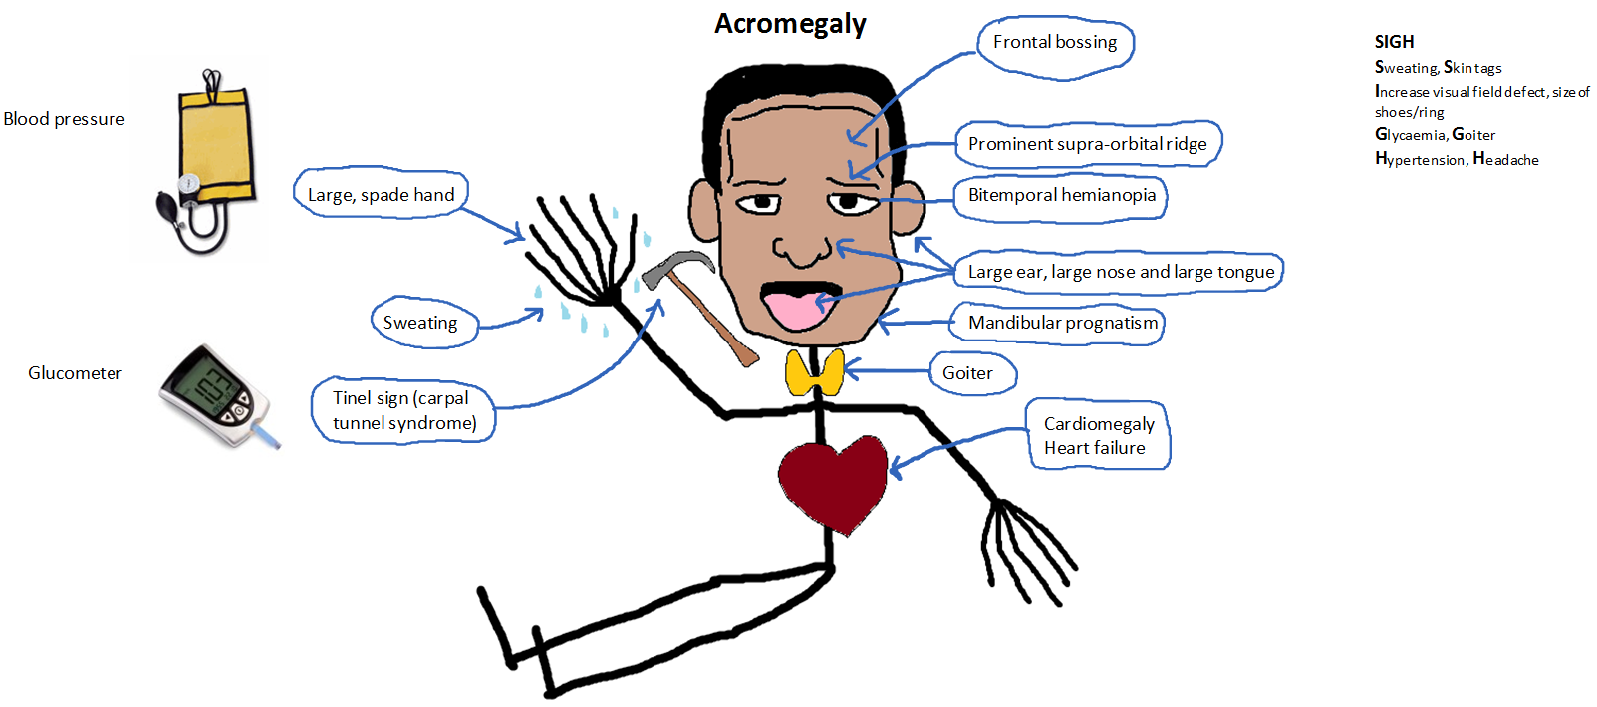 cardiovascular clinical case studies Cardiovascular system clinical case study the case of the overworked executive jm, a forty-six year old hispanic male.